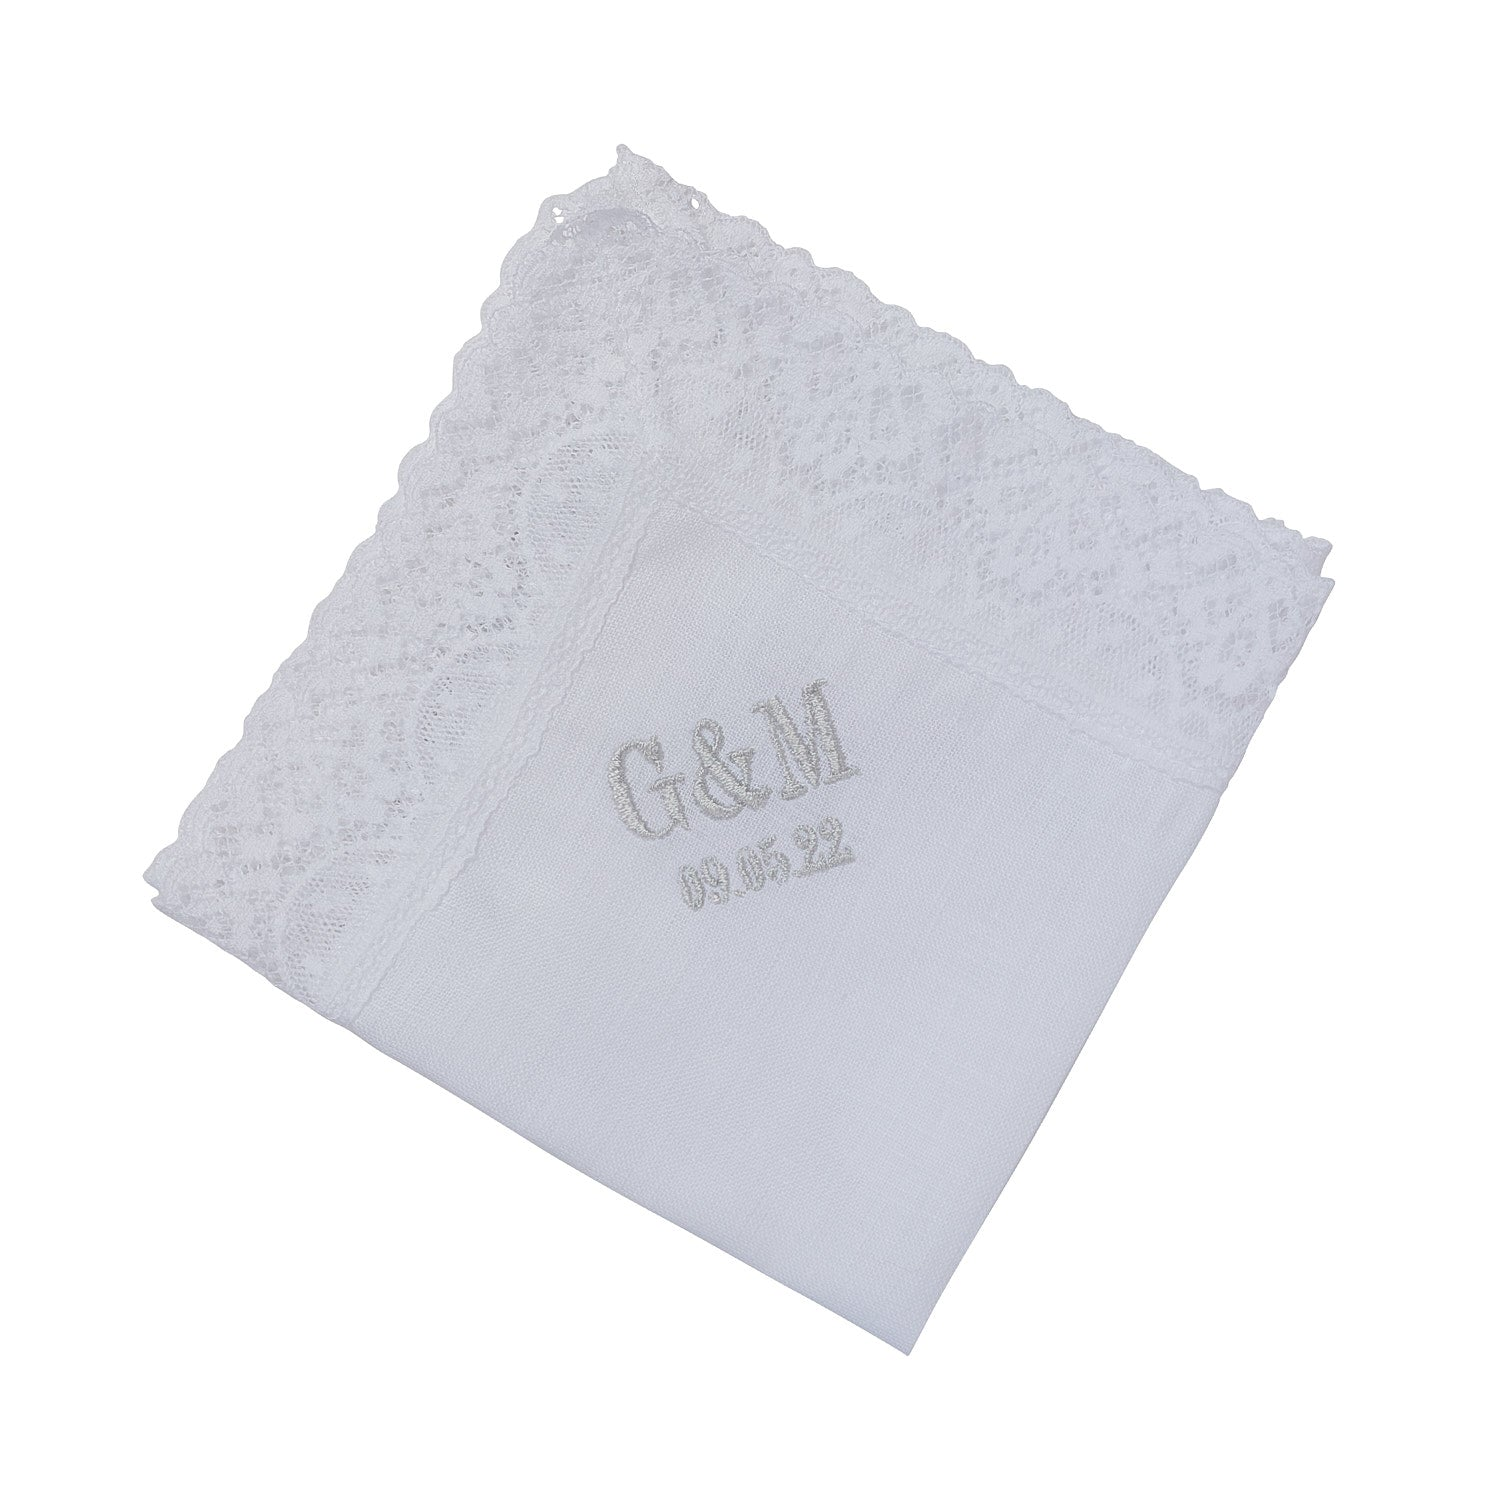 Personalised Women's Handkerchief